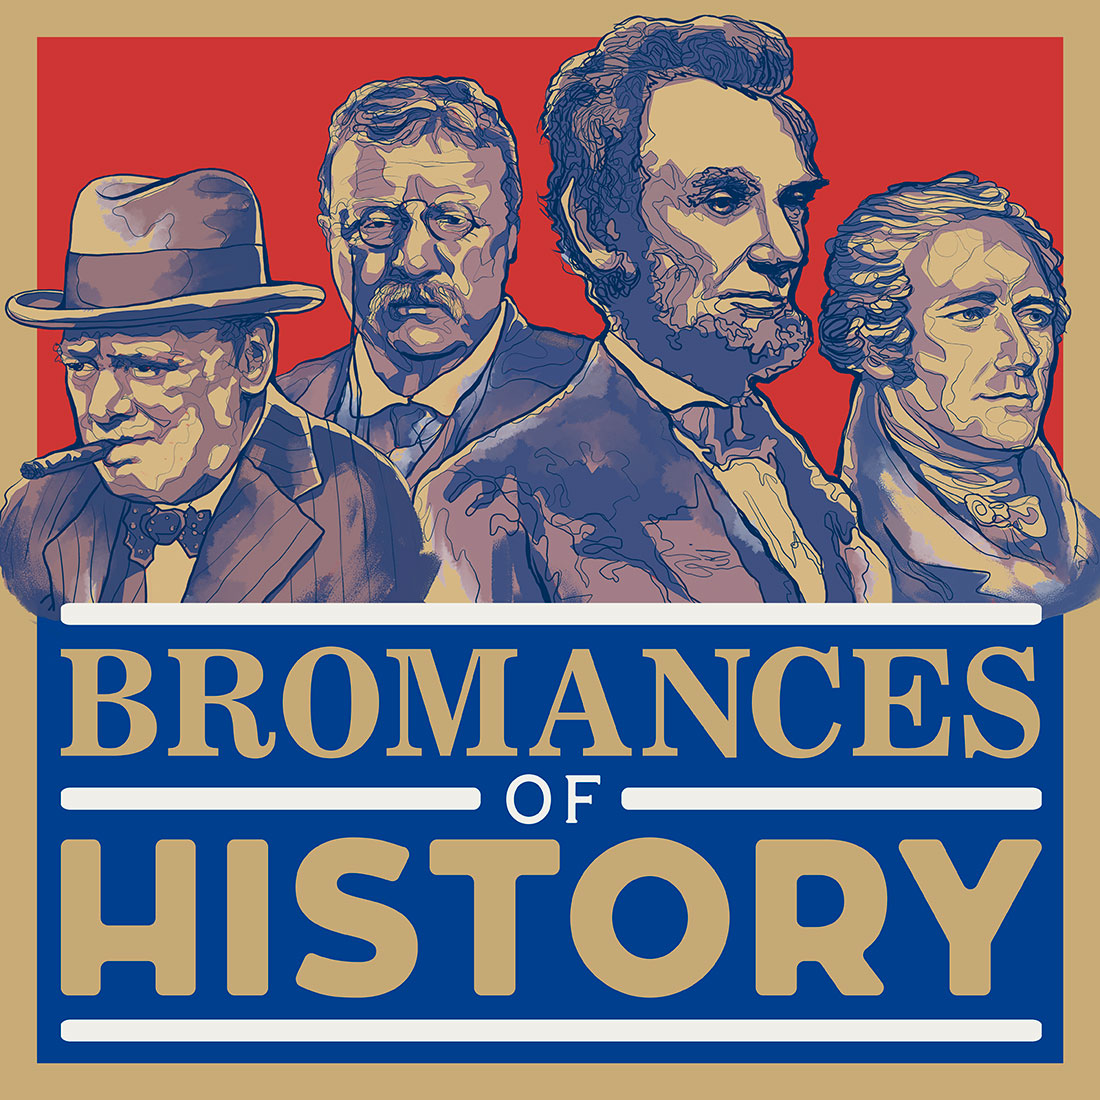 About Bromances of History